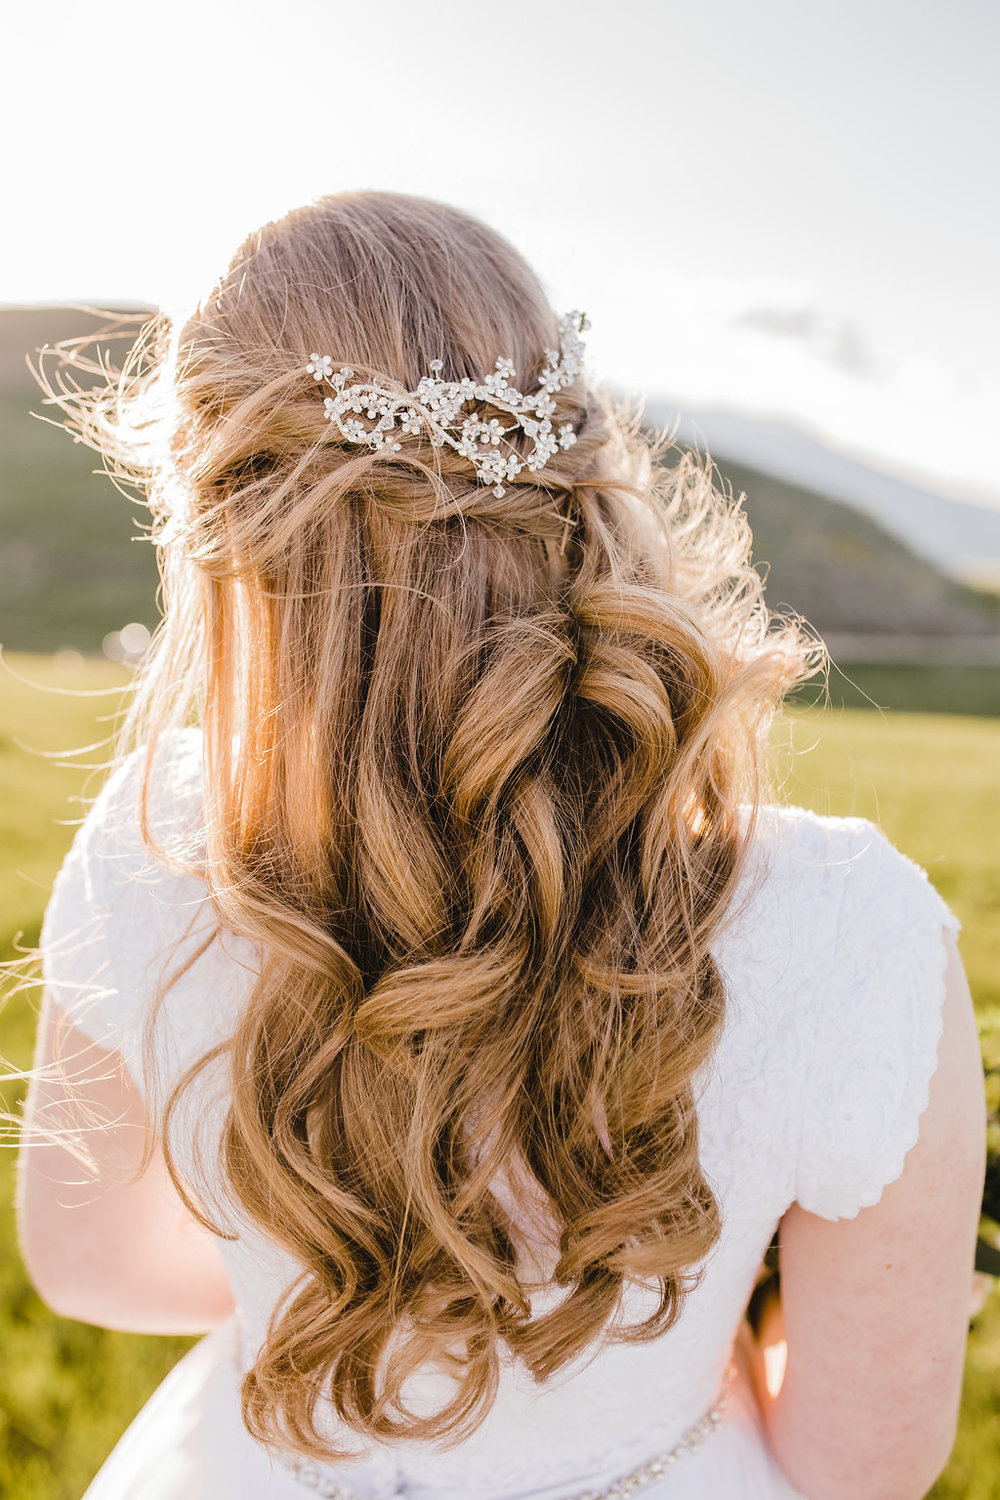 bride details hairpiece wedding photography bridals logan utah wedding photographer bridals session calli richards